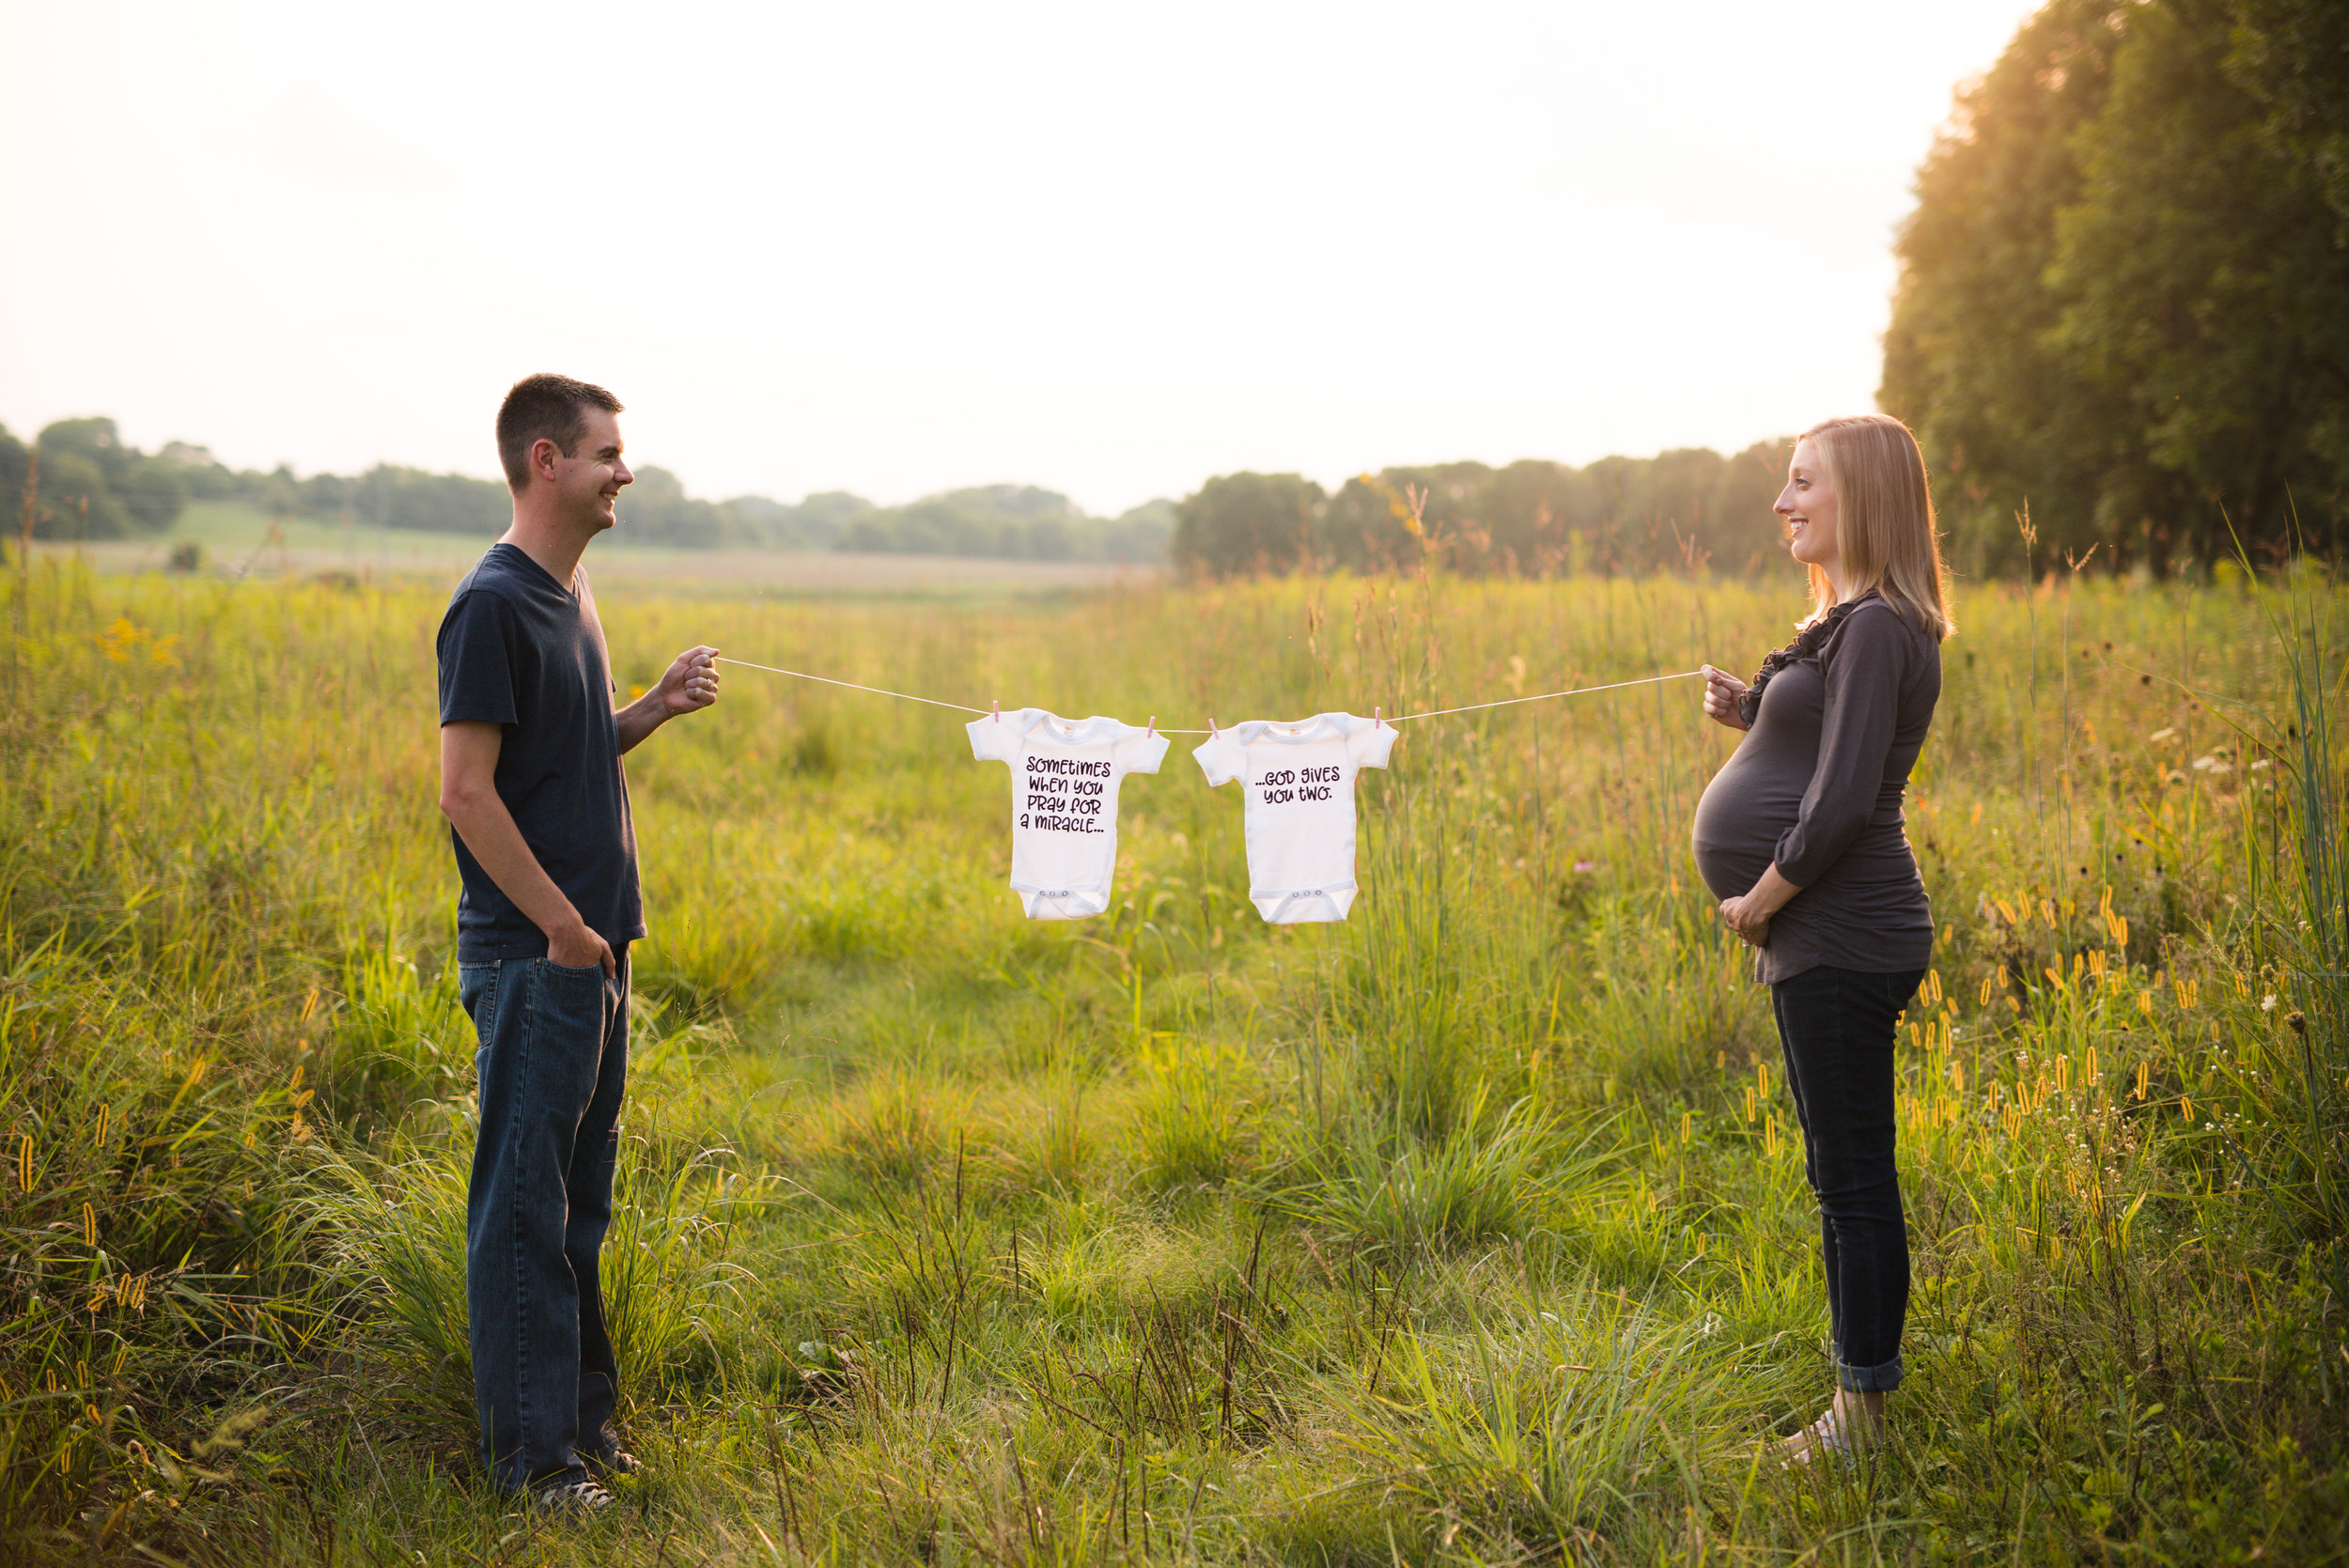 Couple standing holding string with two onesies for twins during maternity photo session at 30 weeks in Cedar Rapids, Iowa.